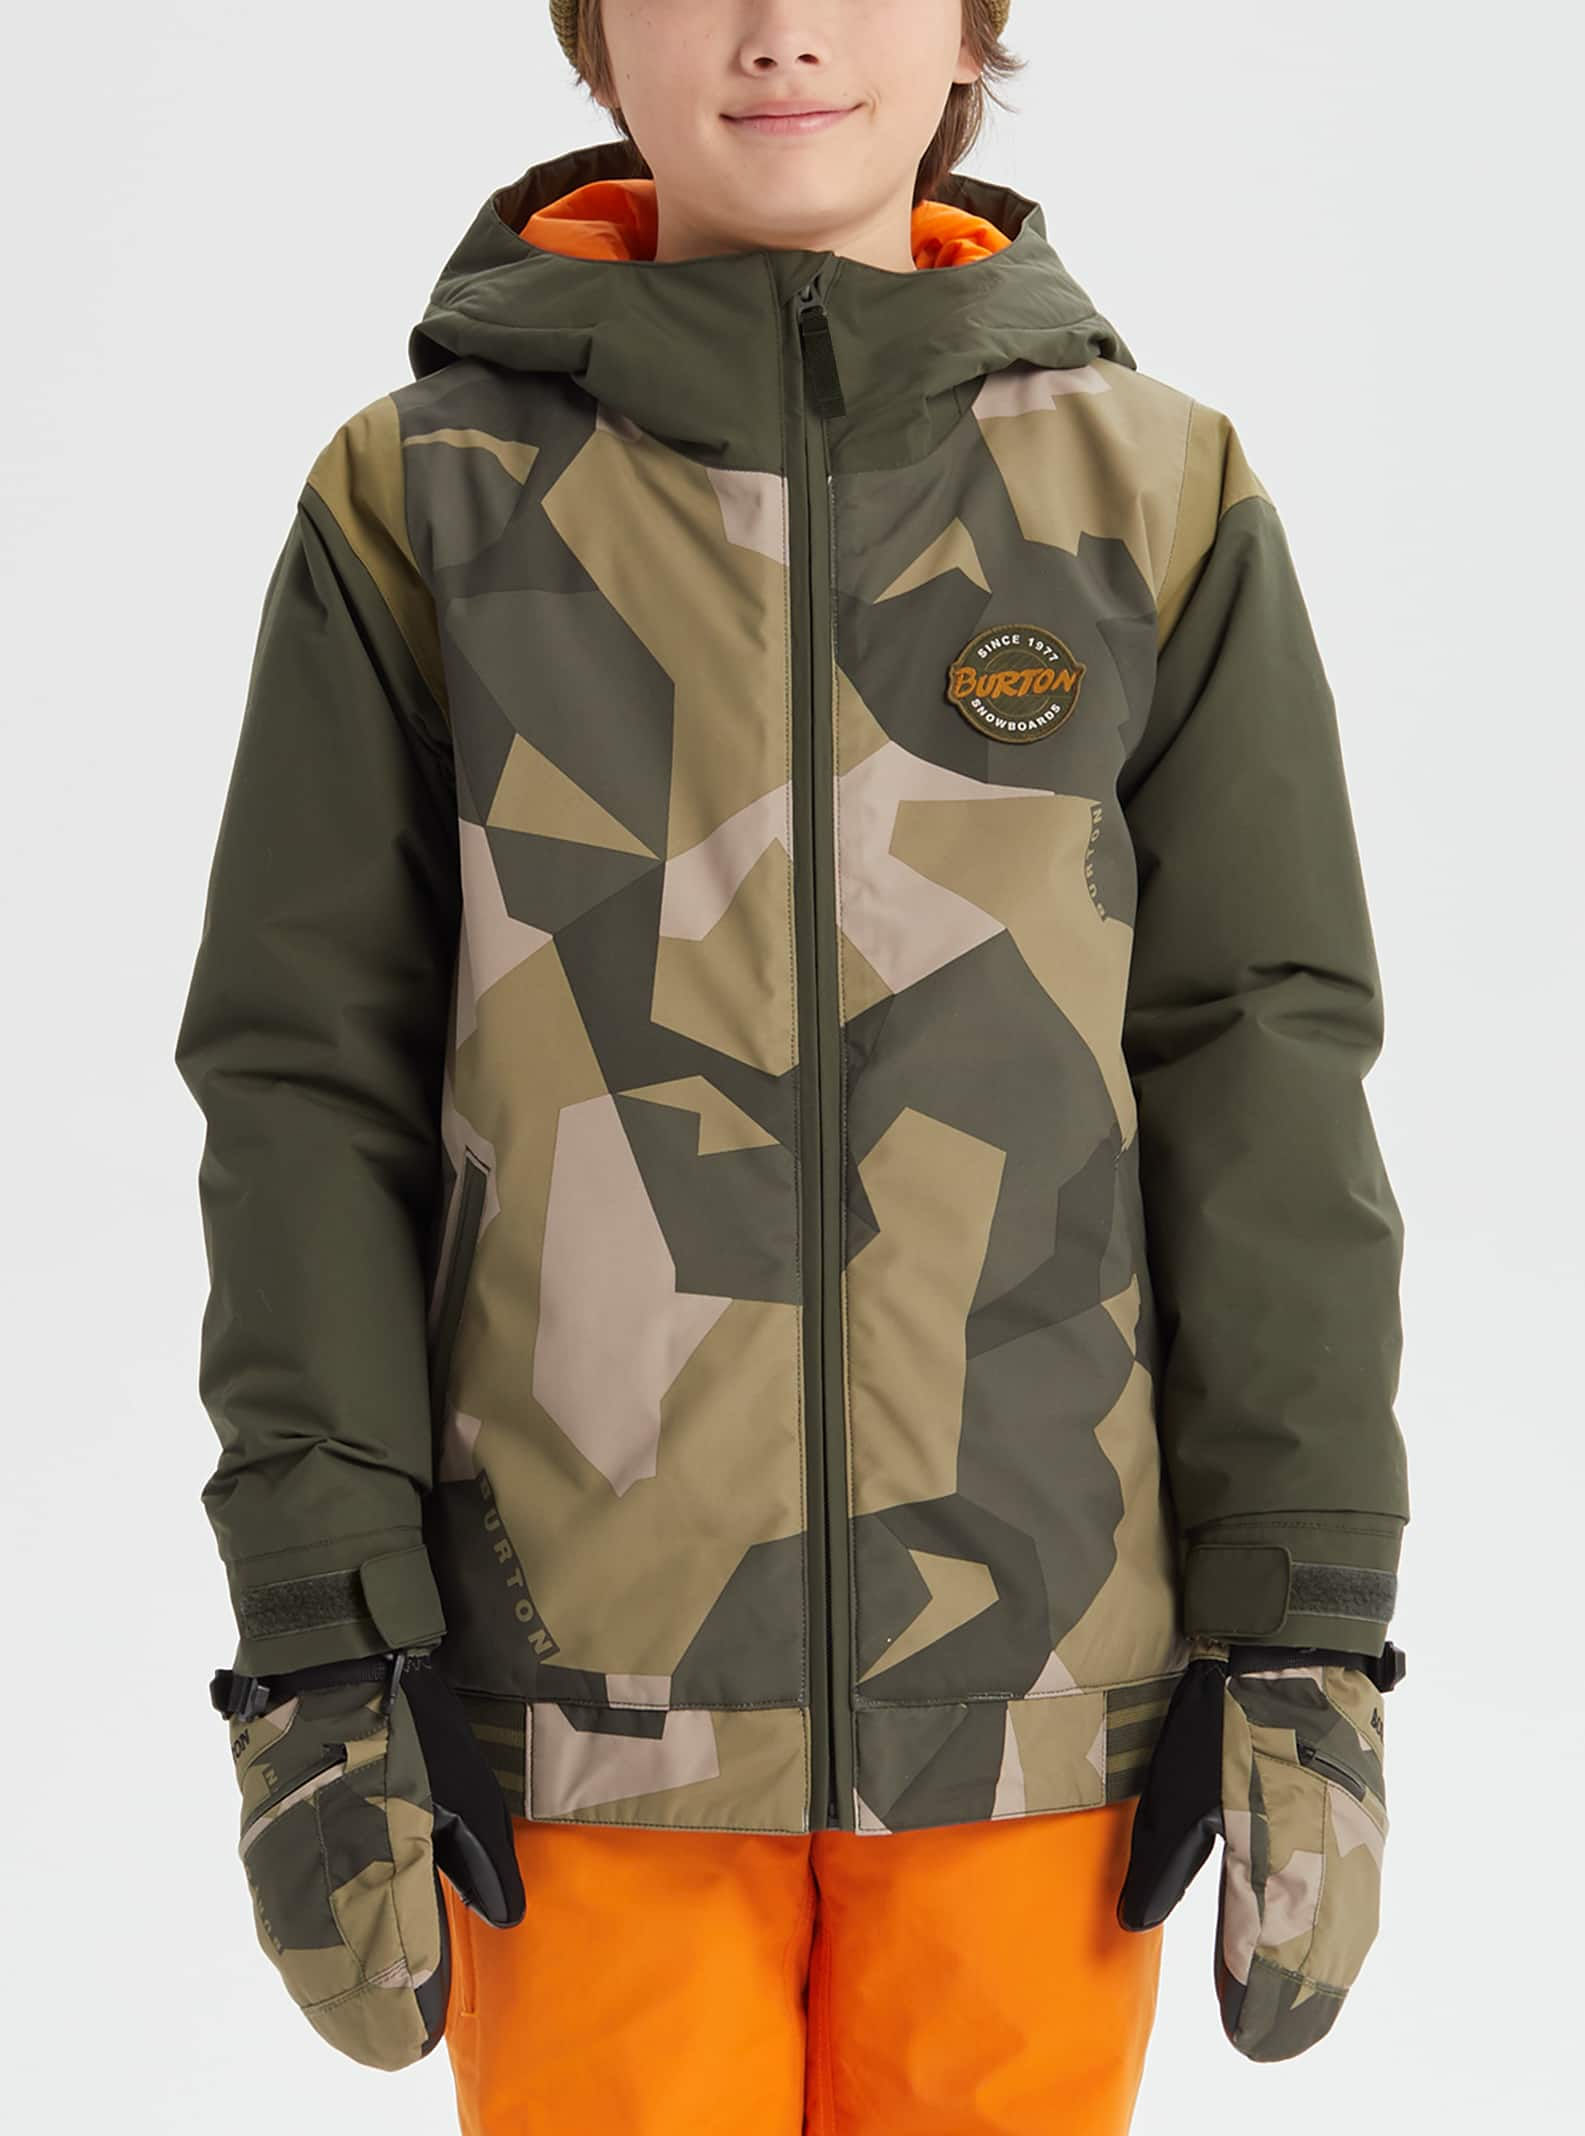 0f0314905 Men's, Women's, and Kids' Snowboard Jackets | Burton Snowboards